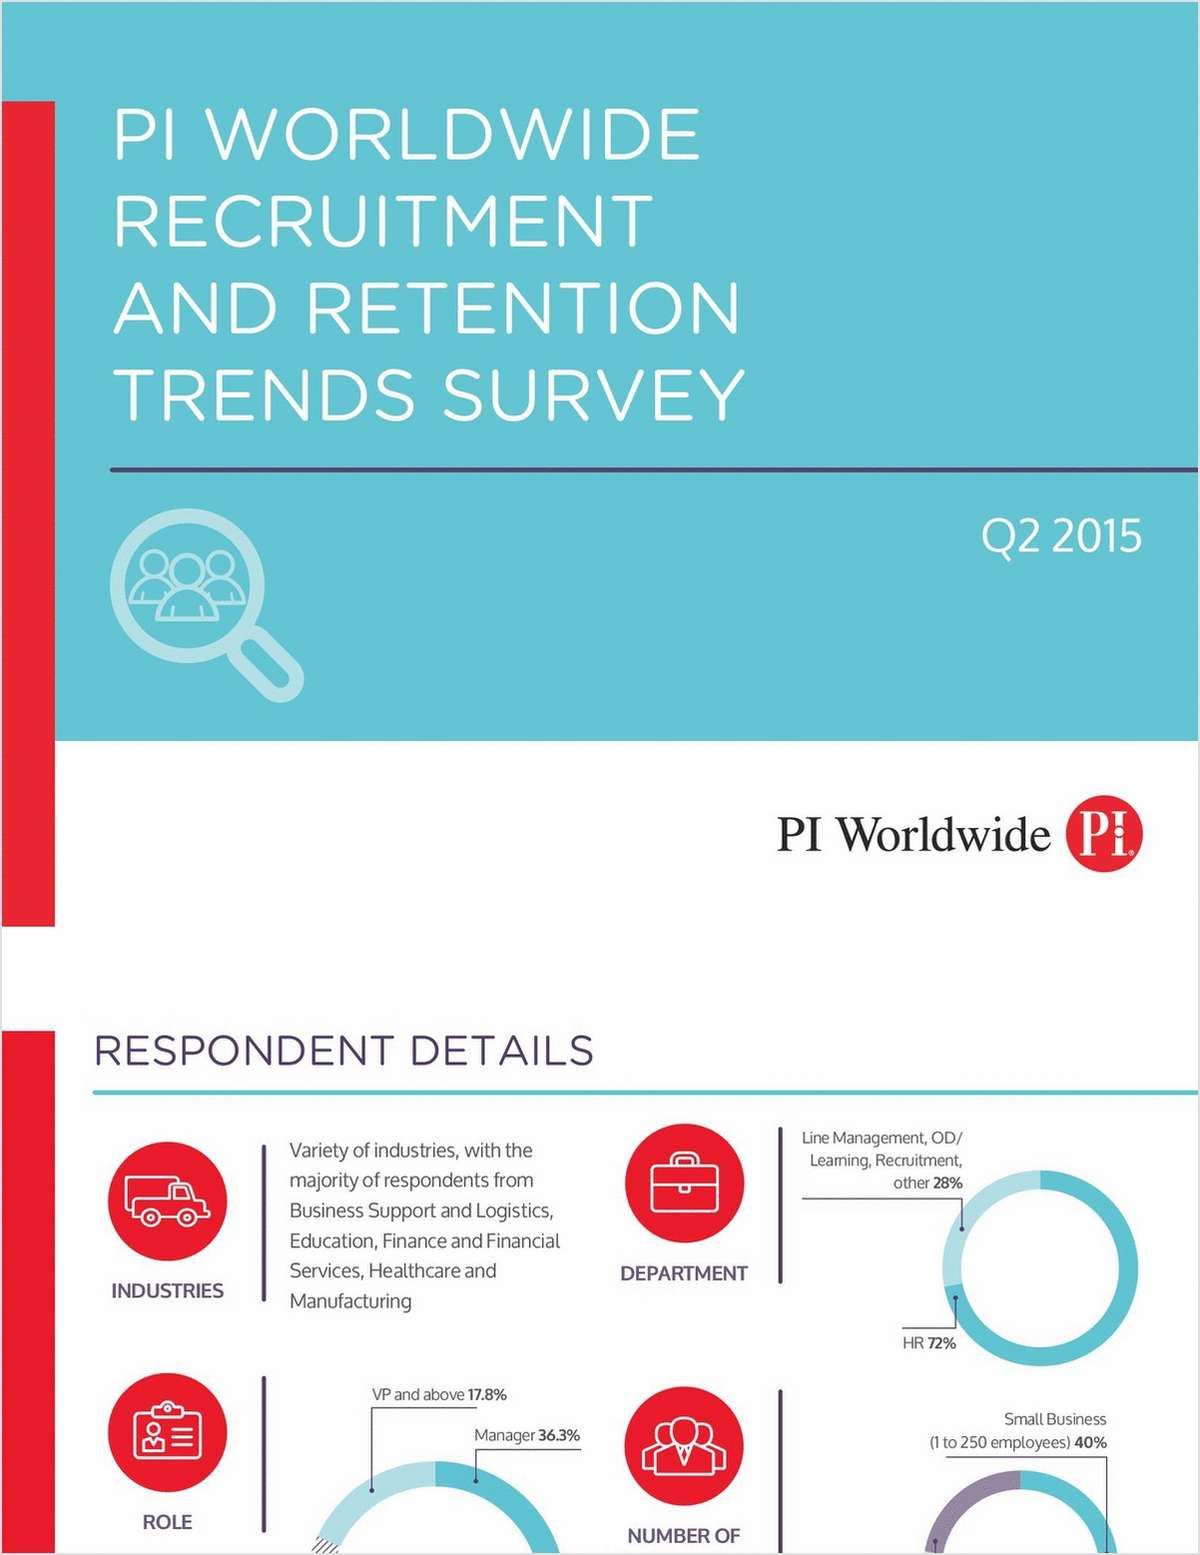 The Biggest Trends in Recruitment and Retention: PI Worldwide Survey Results